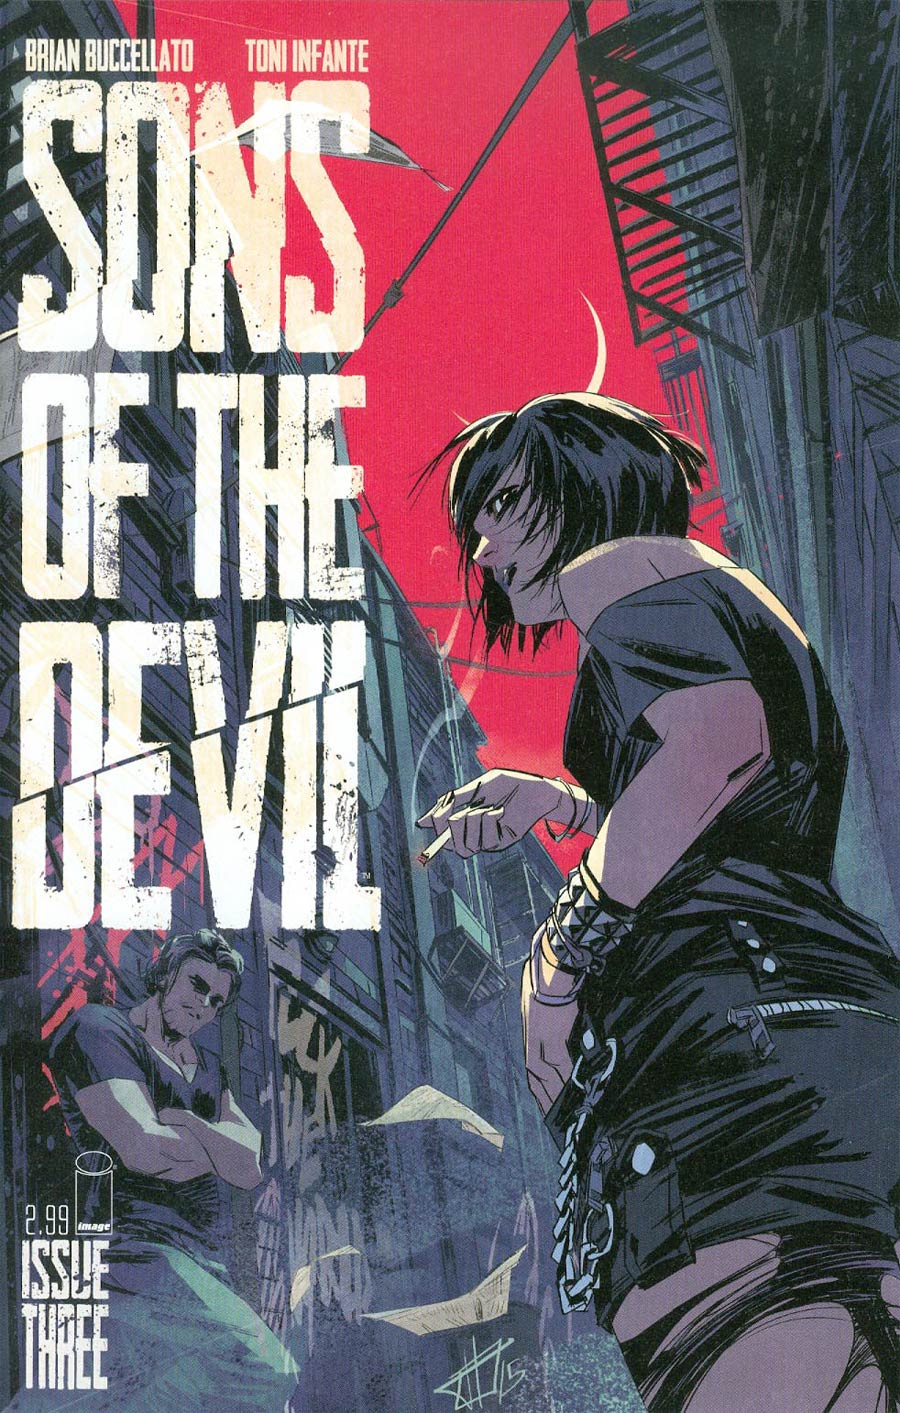 Sons Of The Devil #3 Cover A Toni Infante